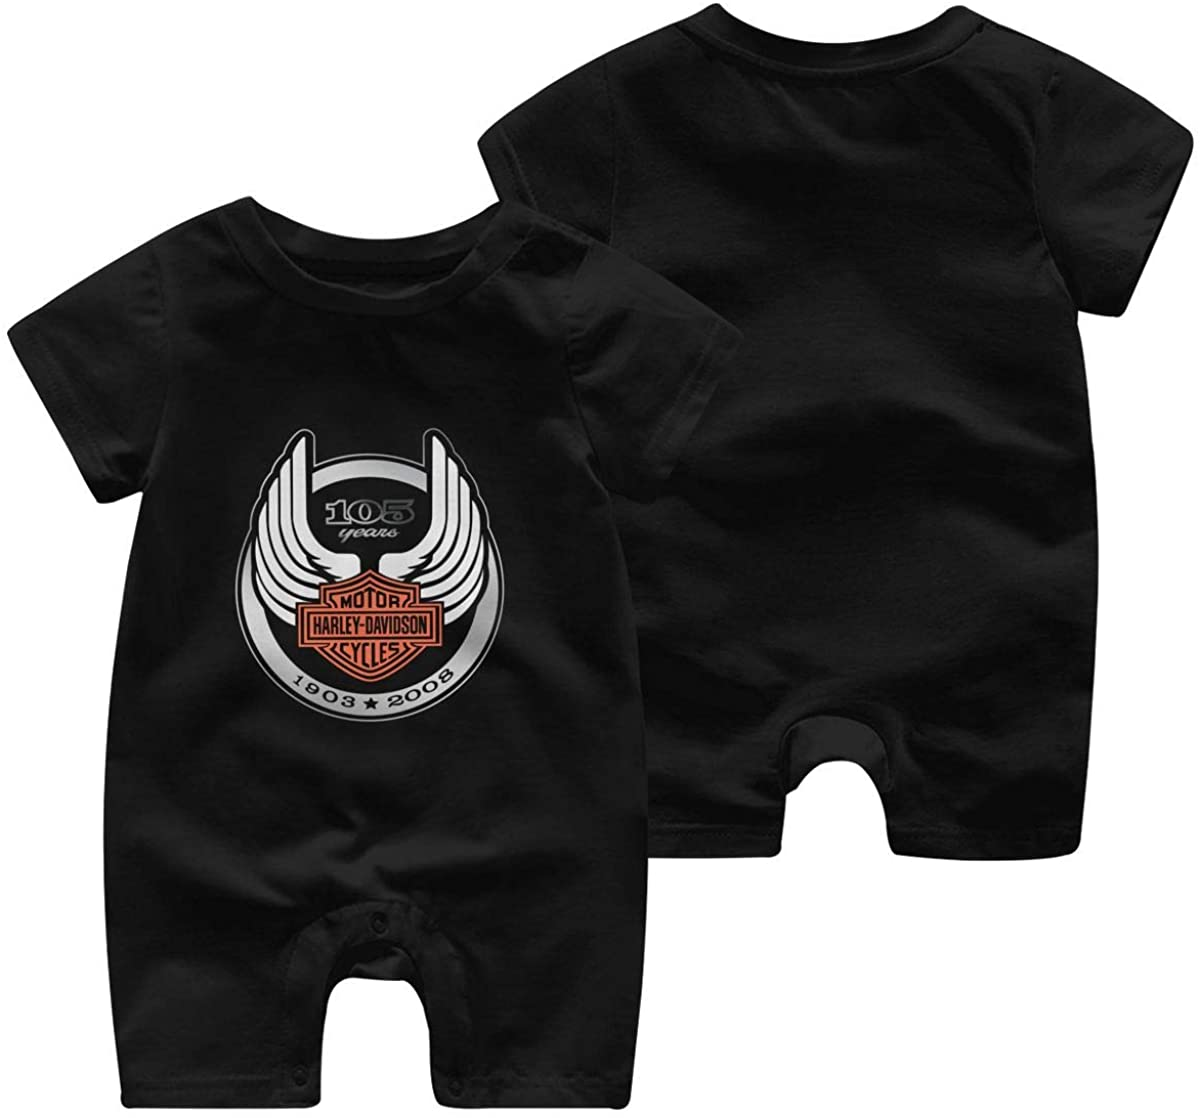 Harley Davidson One Piece Outfits Baby Solid Color Rompers with Button Kids Short Sleeve Playsuit Jumpsuits Cotton Clothing 12 Months Black